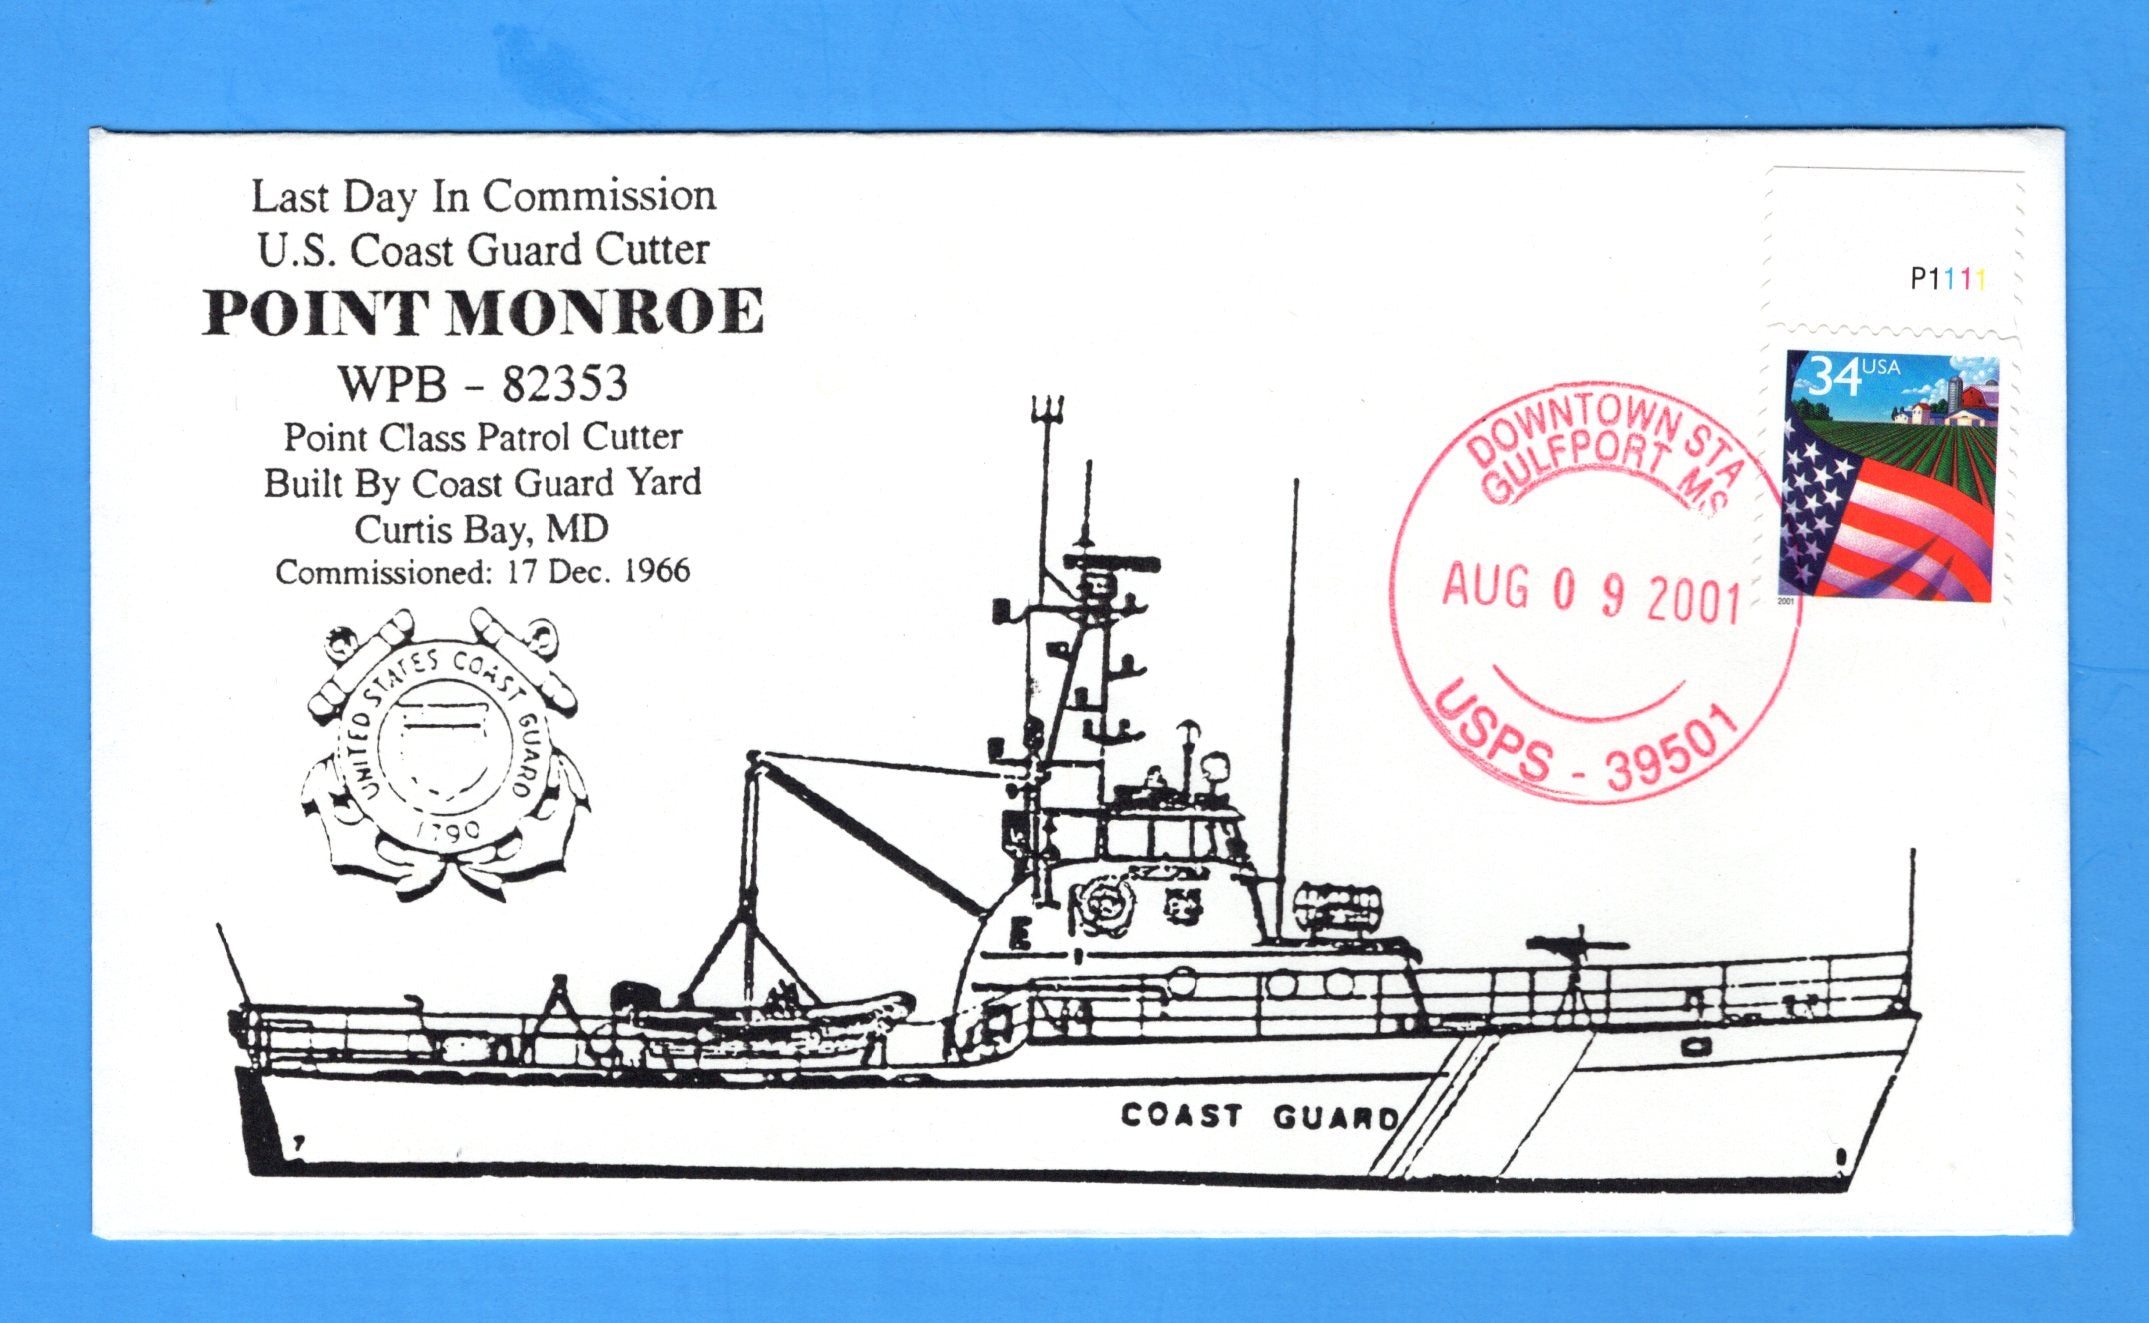 USCGC Point Monroe WPB-82353 Last Day in Commission August 9, 2001 - Cachet by Bill Everett